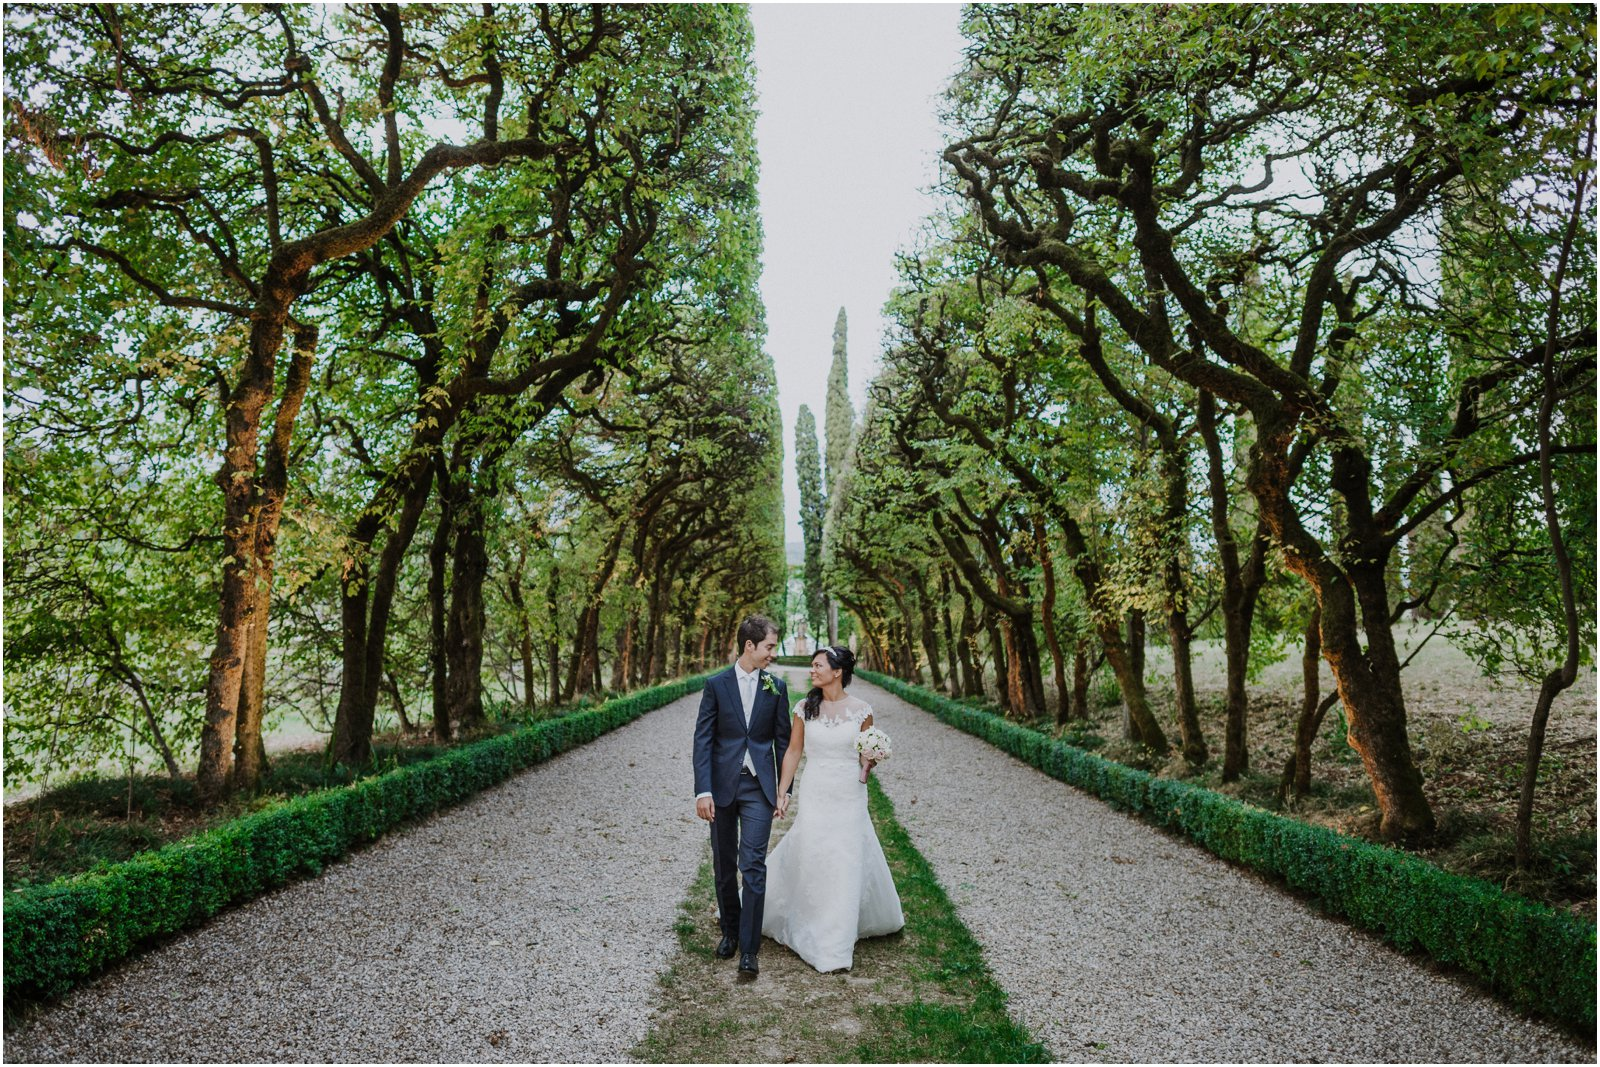 veronasposi foto e video matrimonio verona_0596